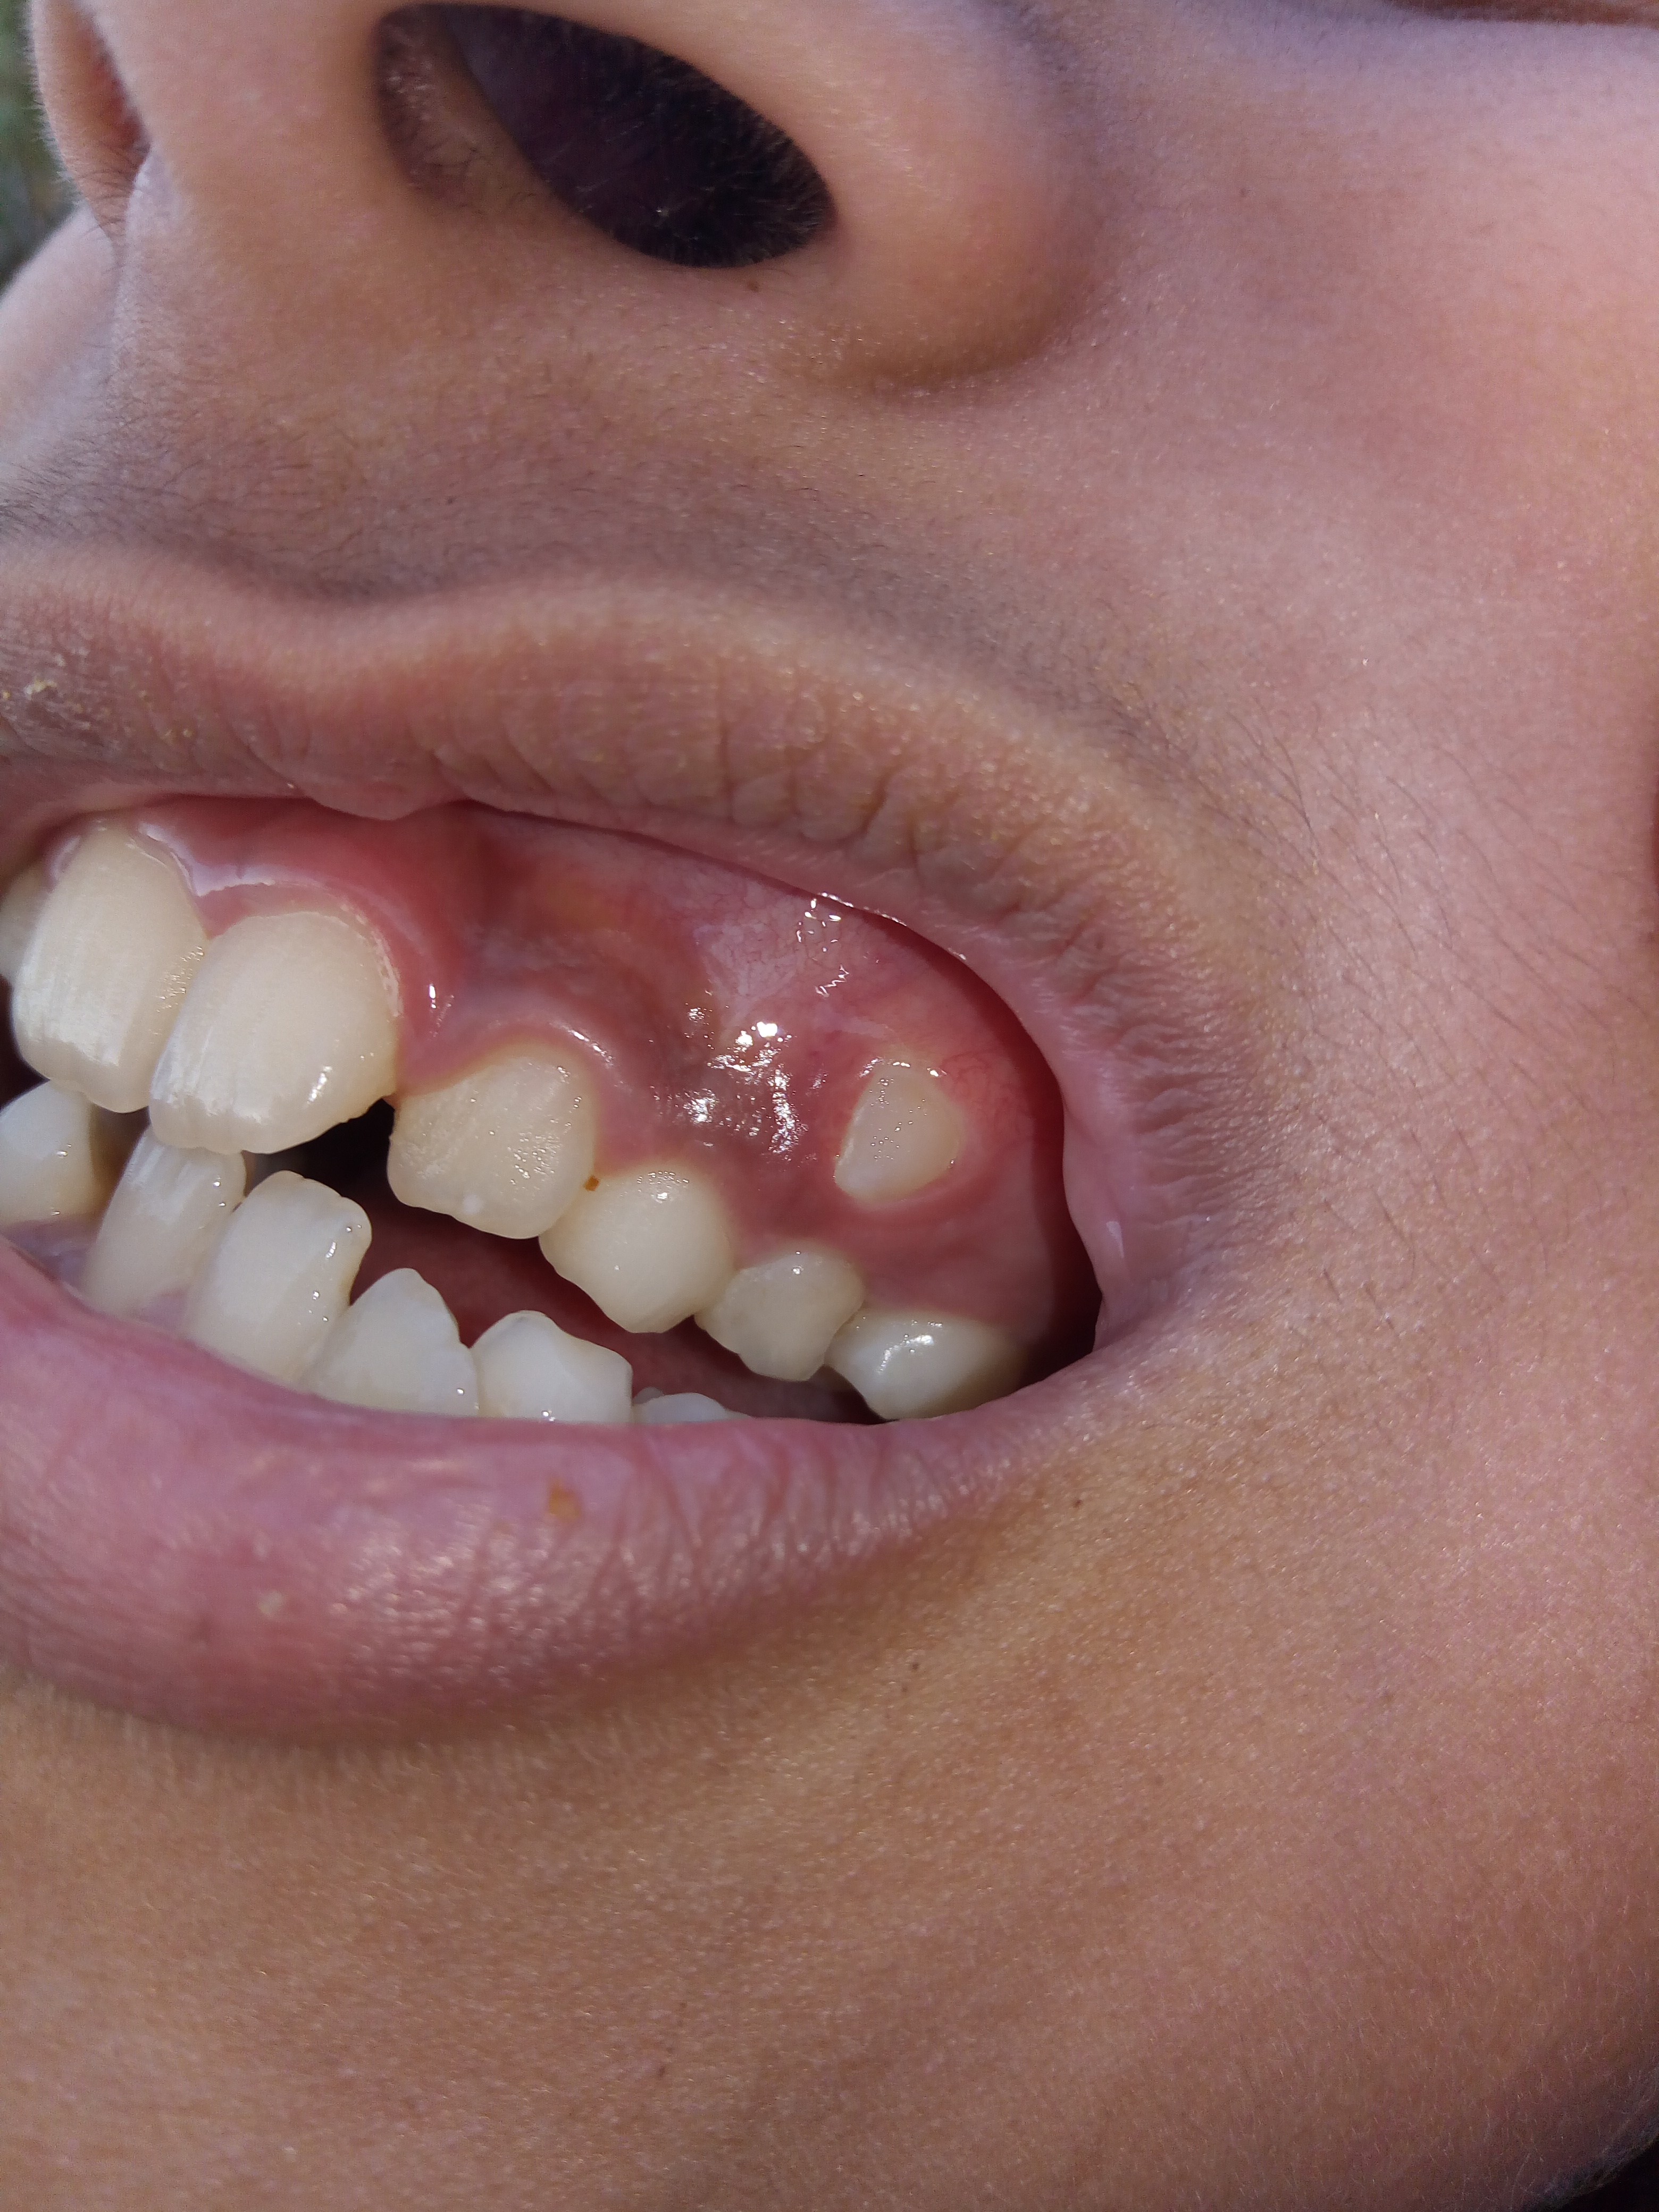 Malocclusion - Wikipedia